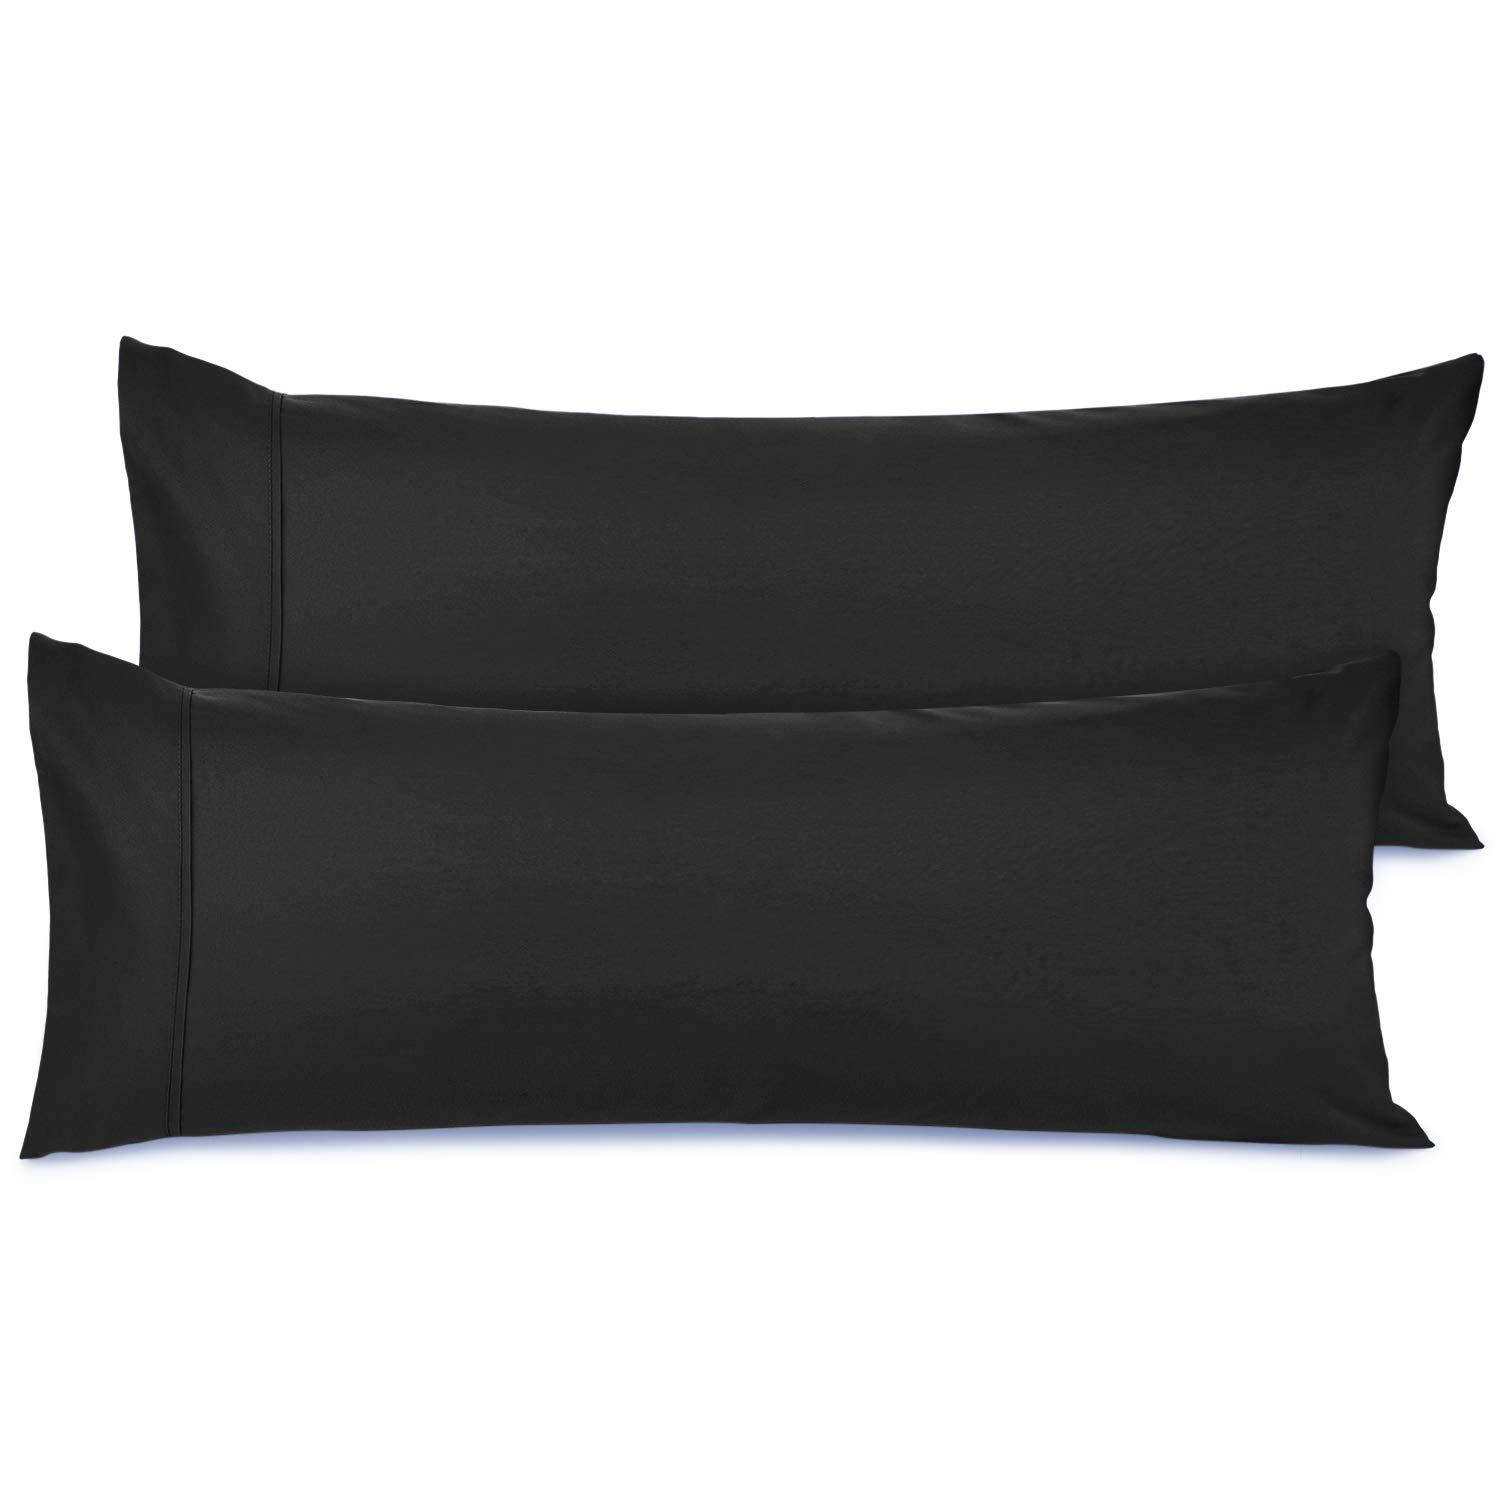 Nestl Bedding Body Pillow Case Set of 2